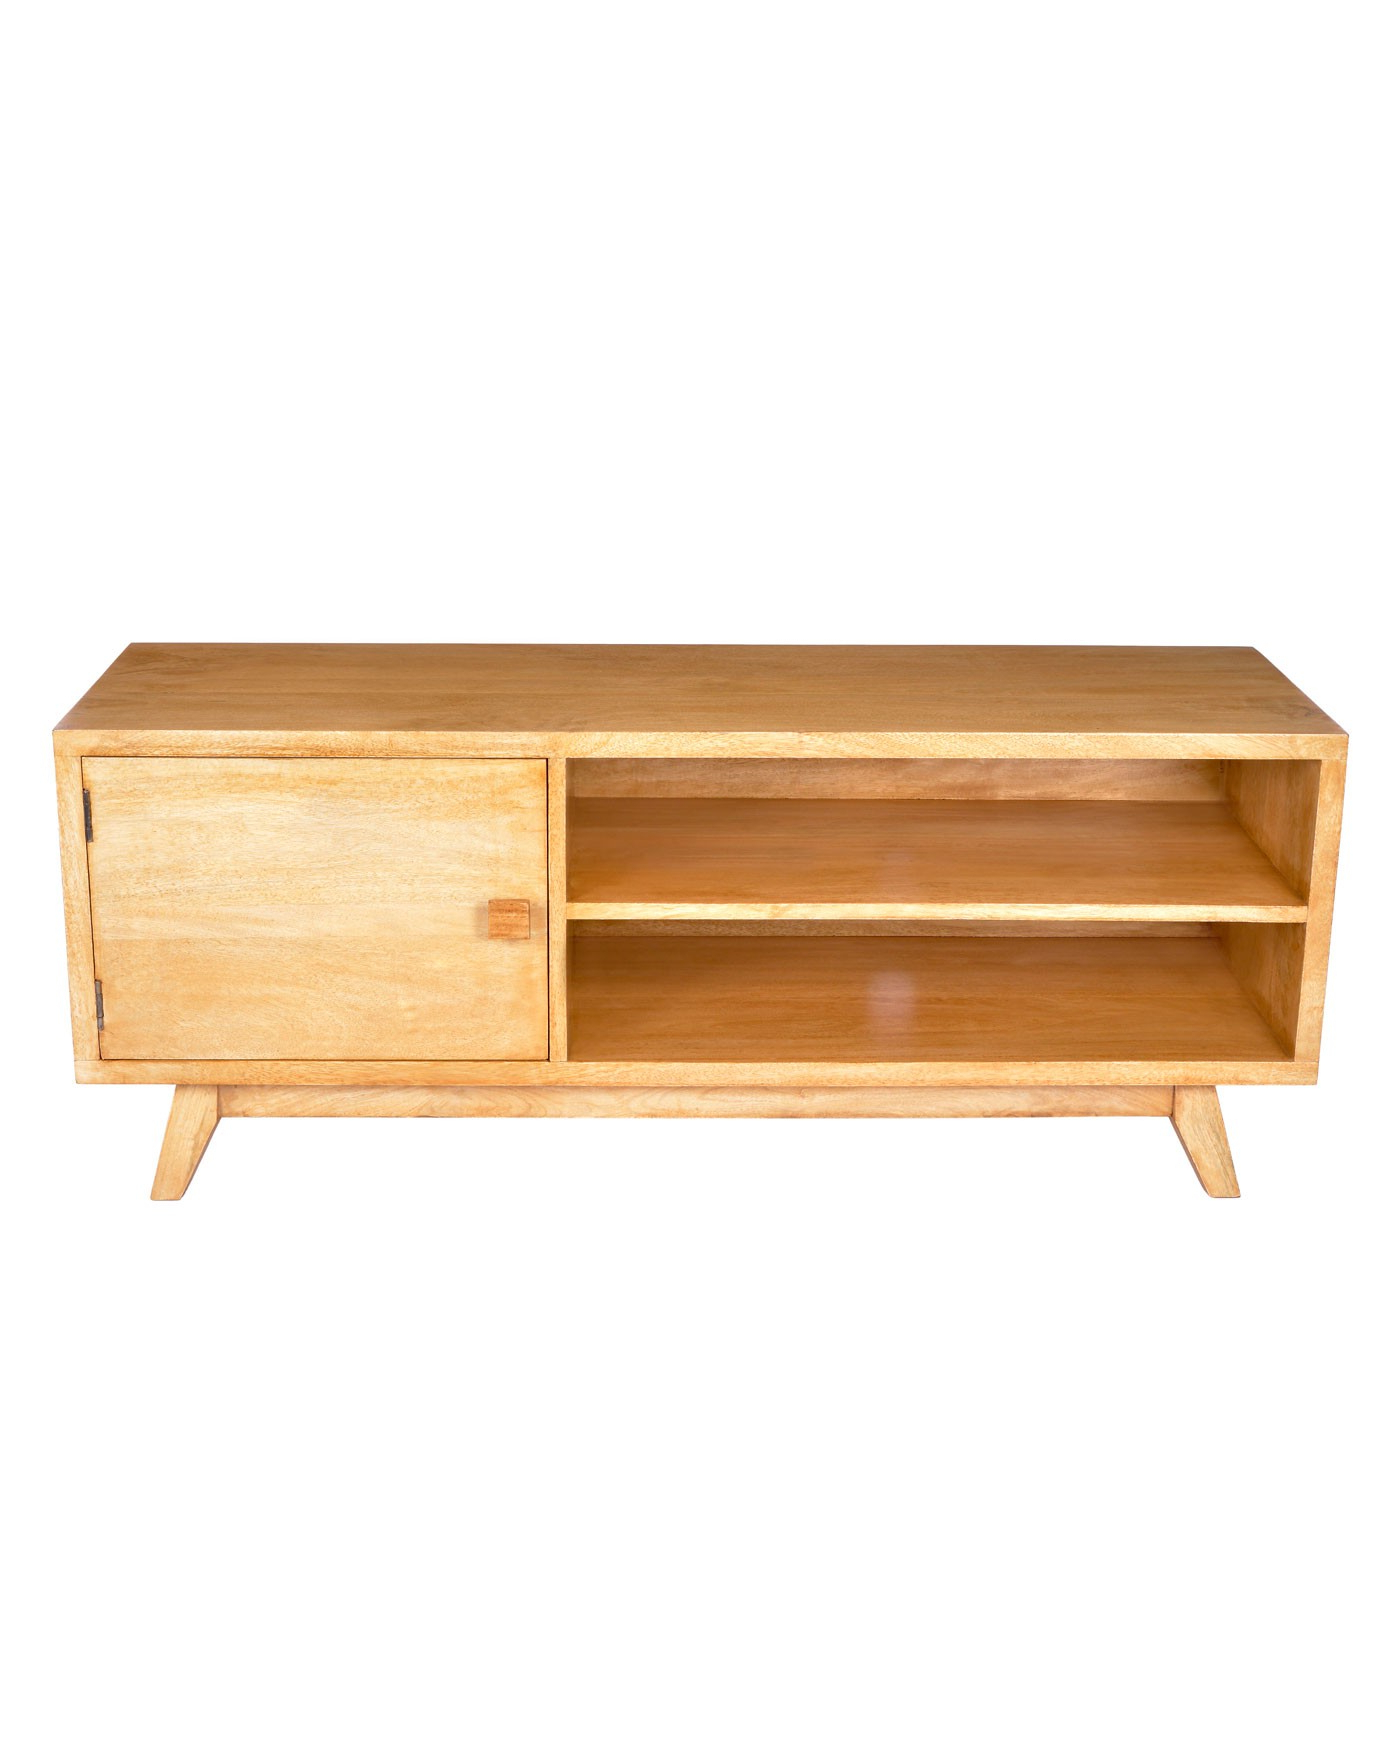 [%retro Wooden Tv Stand With Shelf 100% Solid Mango Wood Oak Shade Within Well Known Oak Veneer Tv Stands|oak Veneer Tv Stands In Most Recent Retro Wooden Tv Stand With Shelf 100% Solid Mango Wood Oak Shade|most Recent Oak Veneer Tv Stands Pertaining To Retro Wooden Tv Stand With Shelf 100% Solid Mango Wood Oak Shade|most Up To Date Retro Wooden Tv Stand With Shelf 100% Solid Mango Wood Oak Shade With Regard To Oak Veneer Tv Stands%] (View 20 of 20)